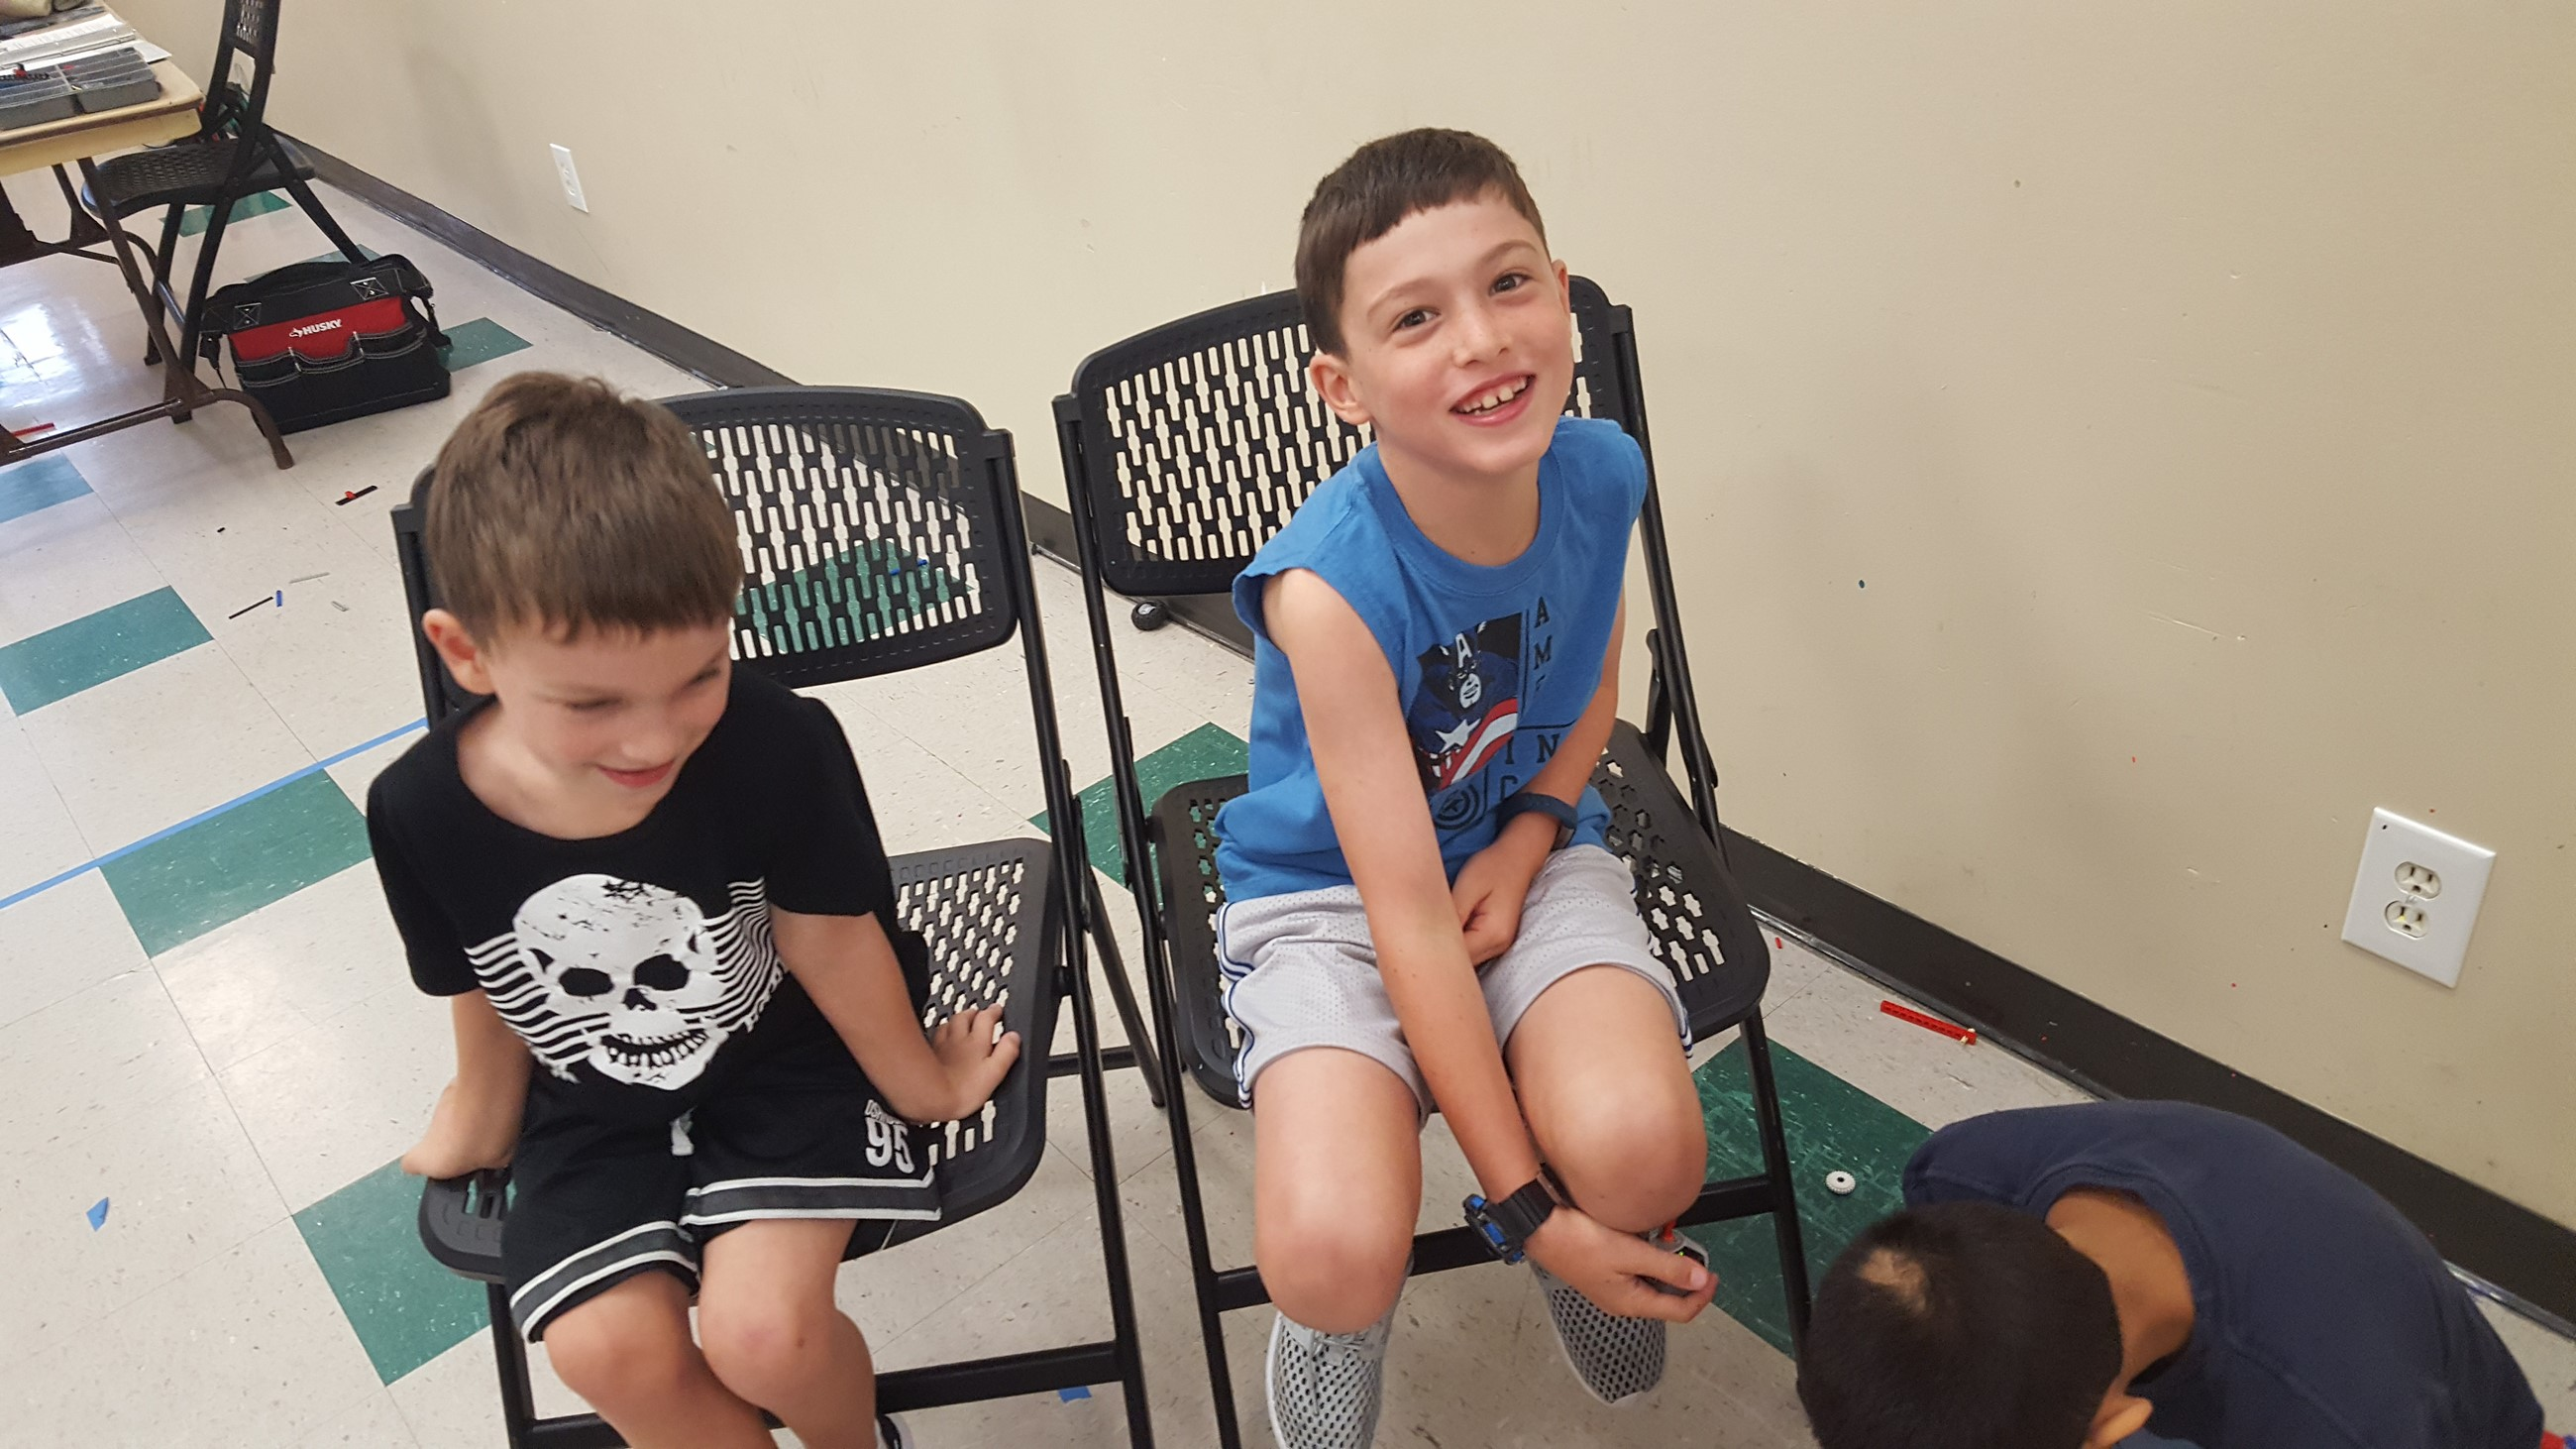 Two children sitting in chairs at camp